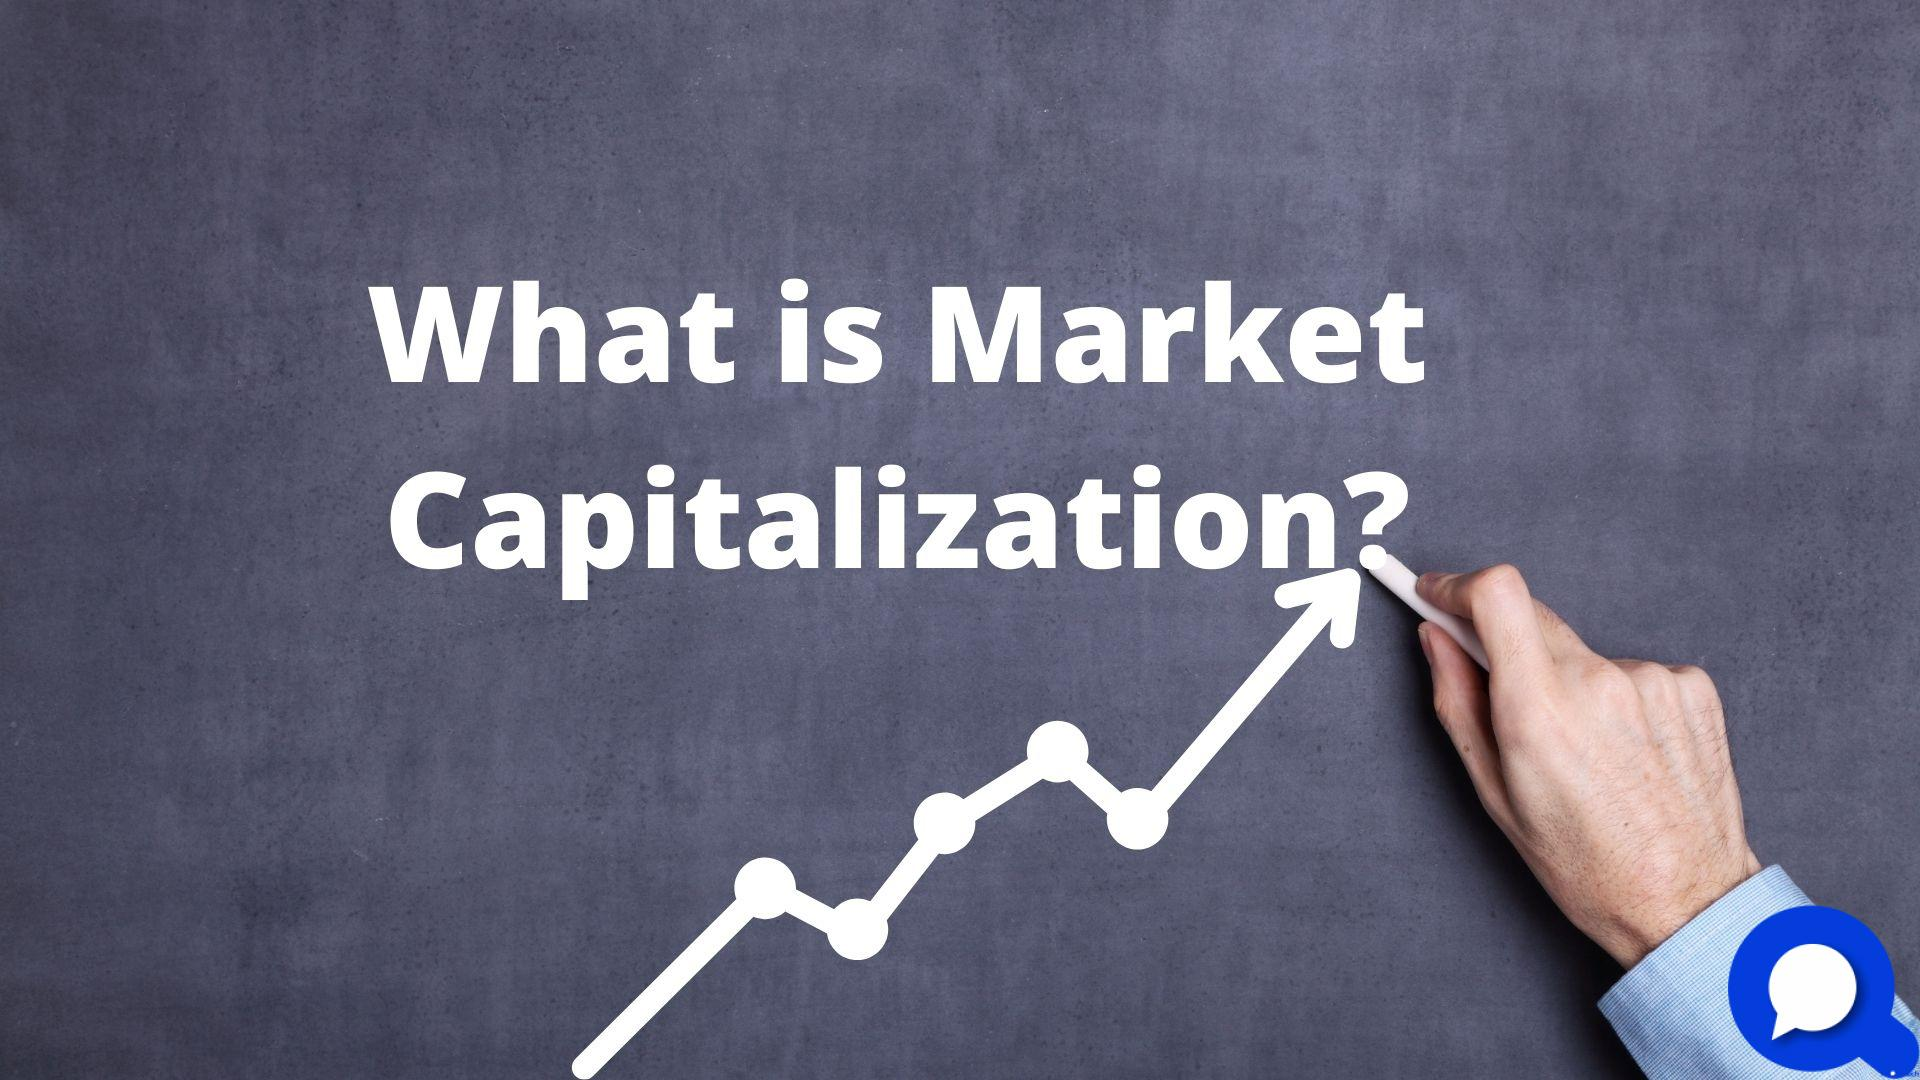 What is Market Capitalization